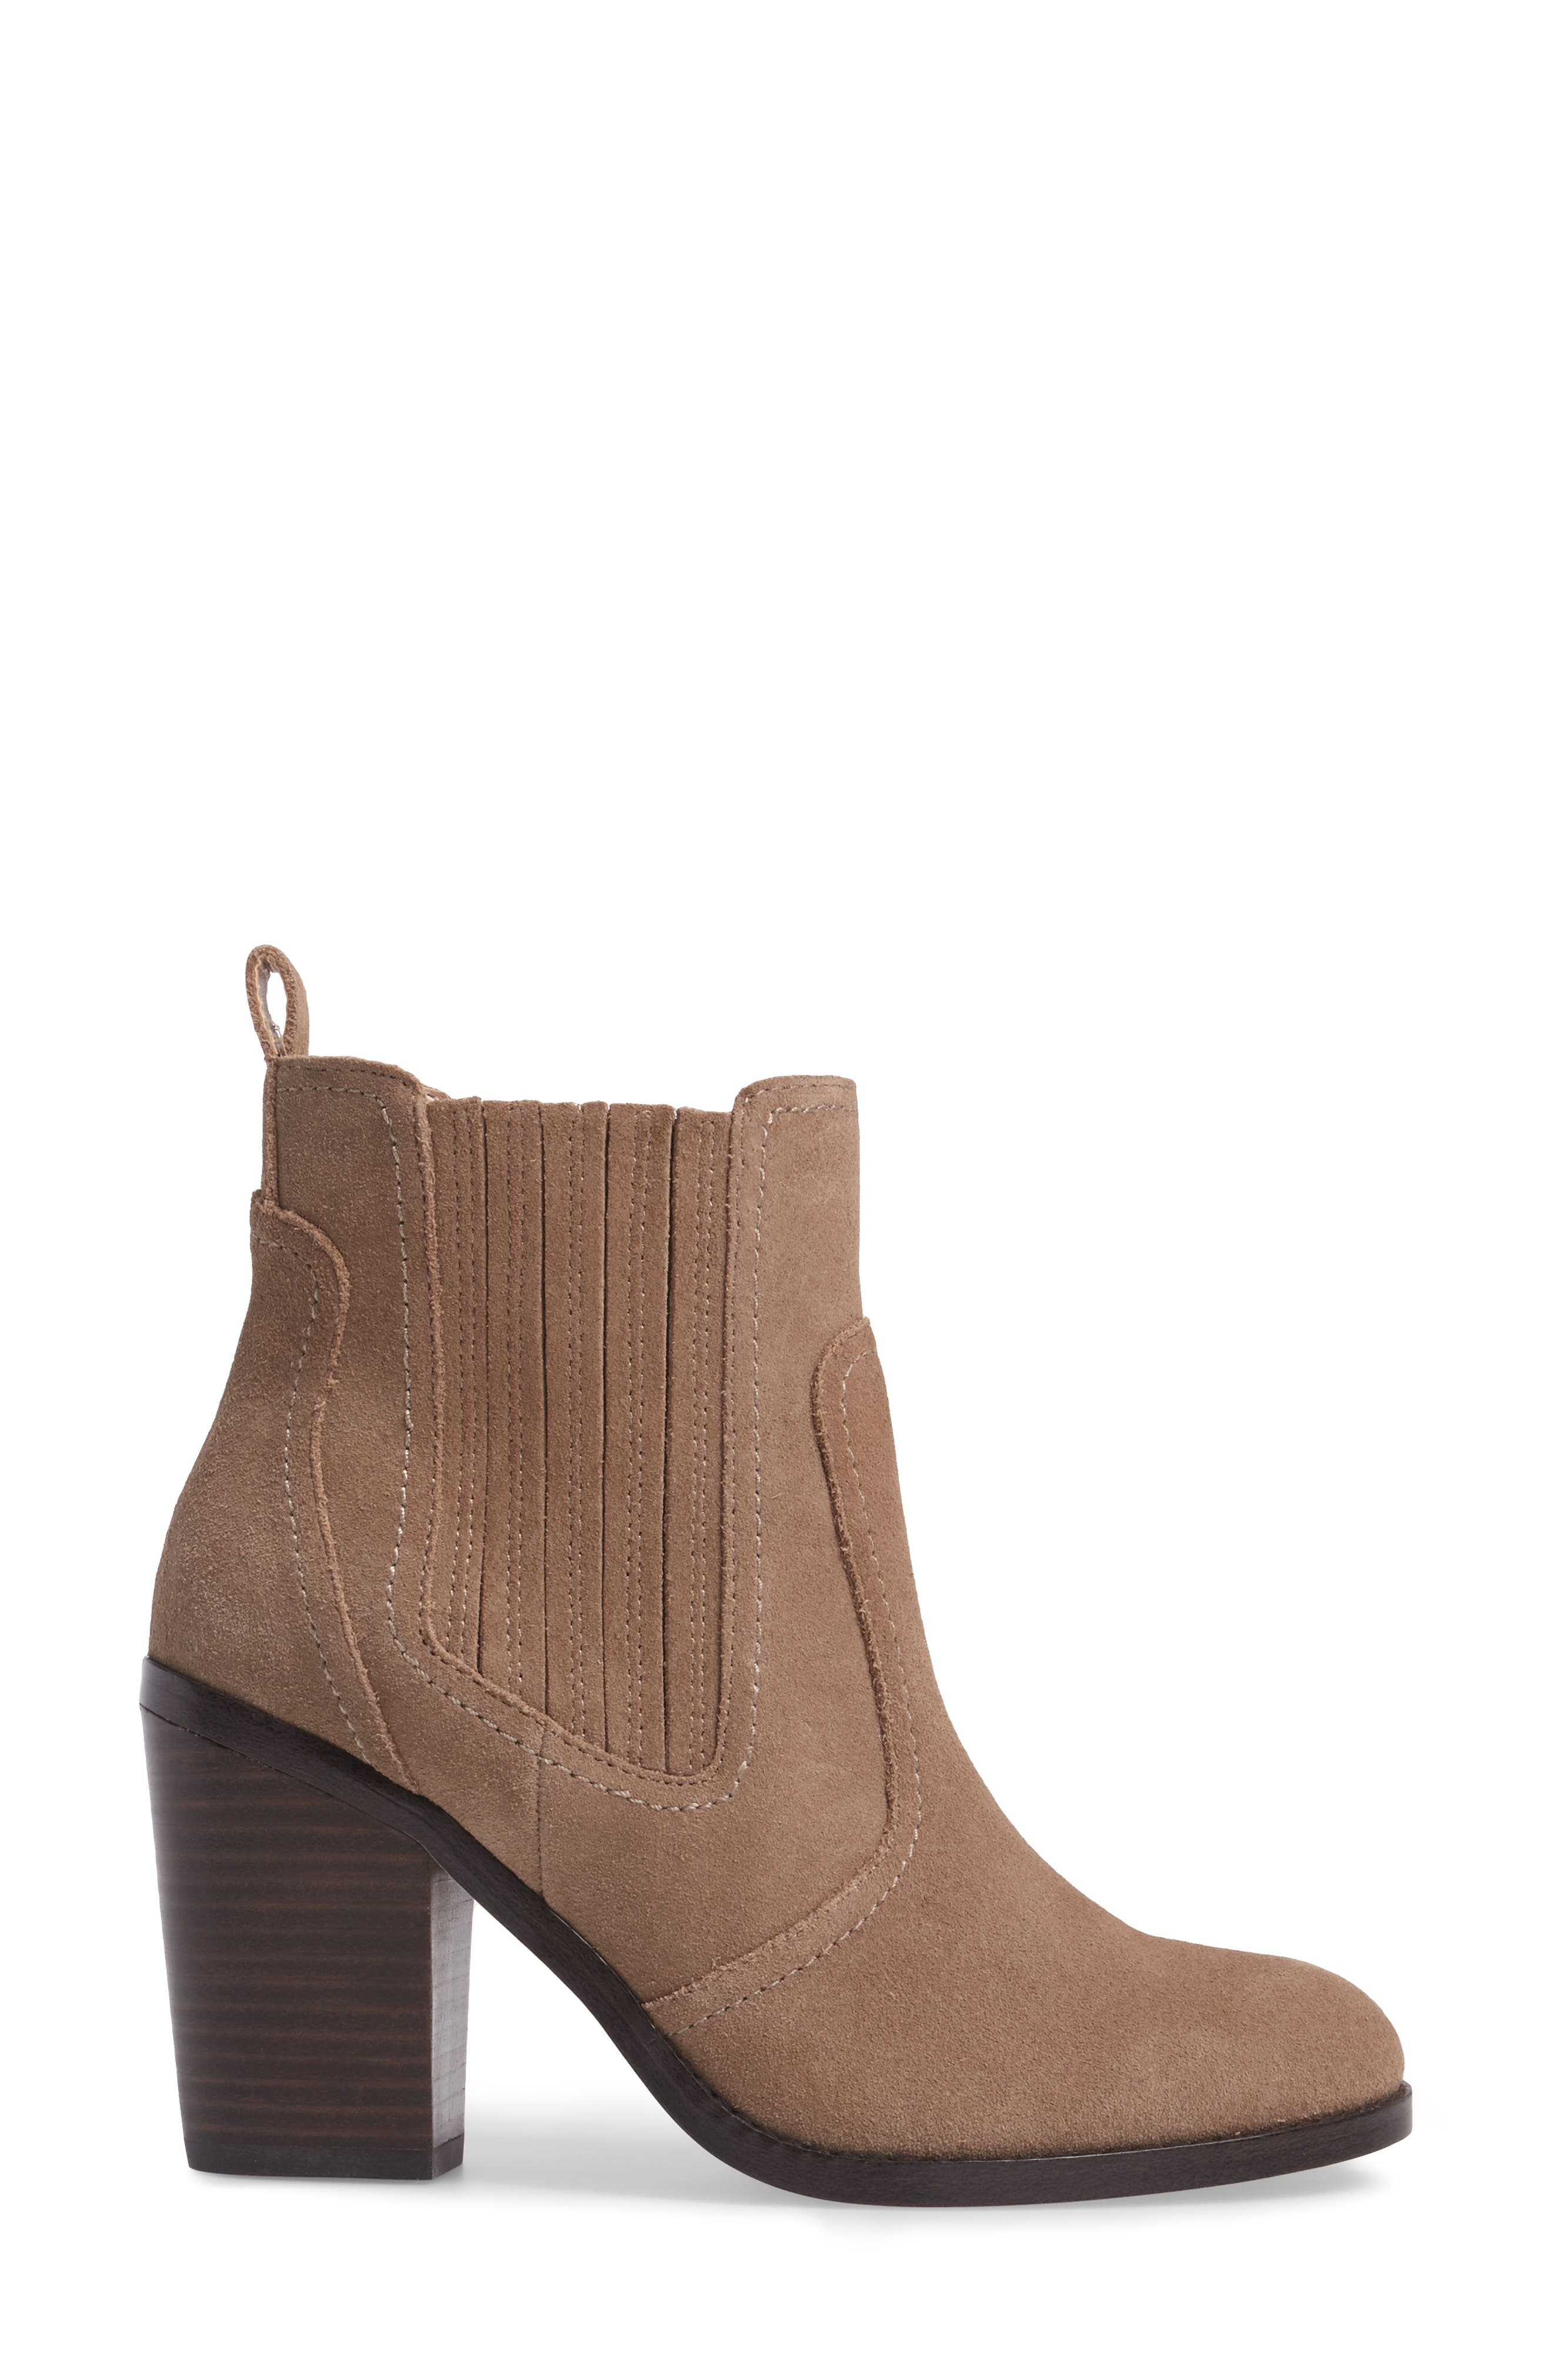 Harbor Bootie,                             Alternate thumbnail 3, color,                             Taupe